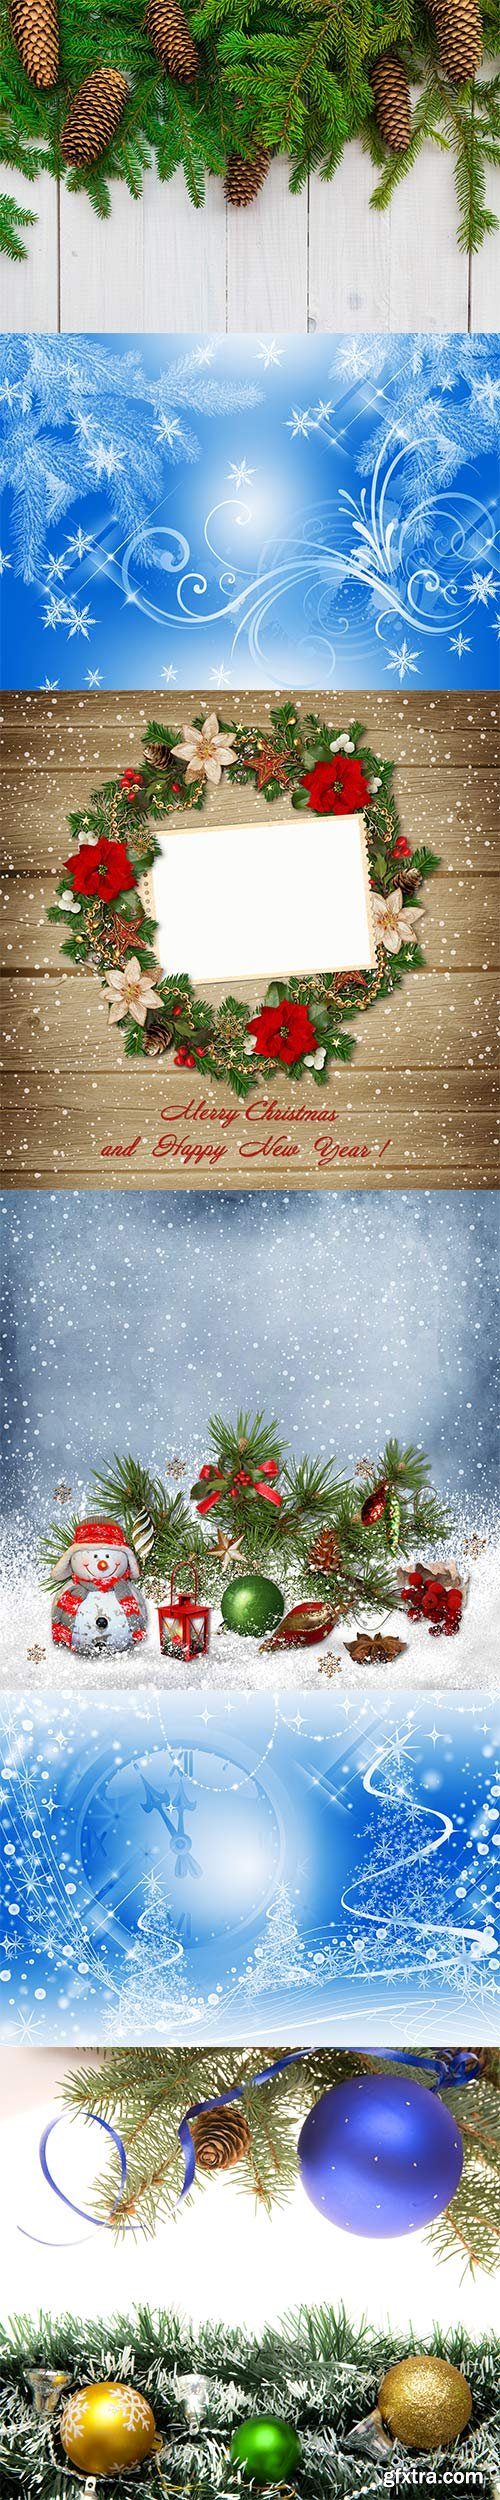 Christmas winter backgrounds - 2